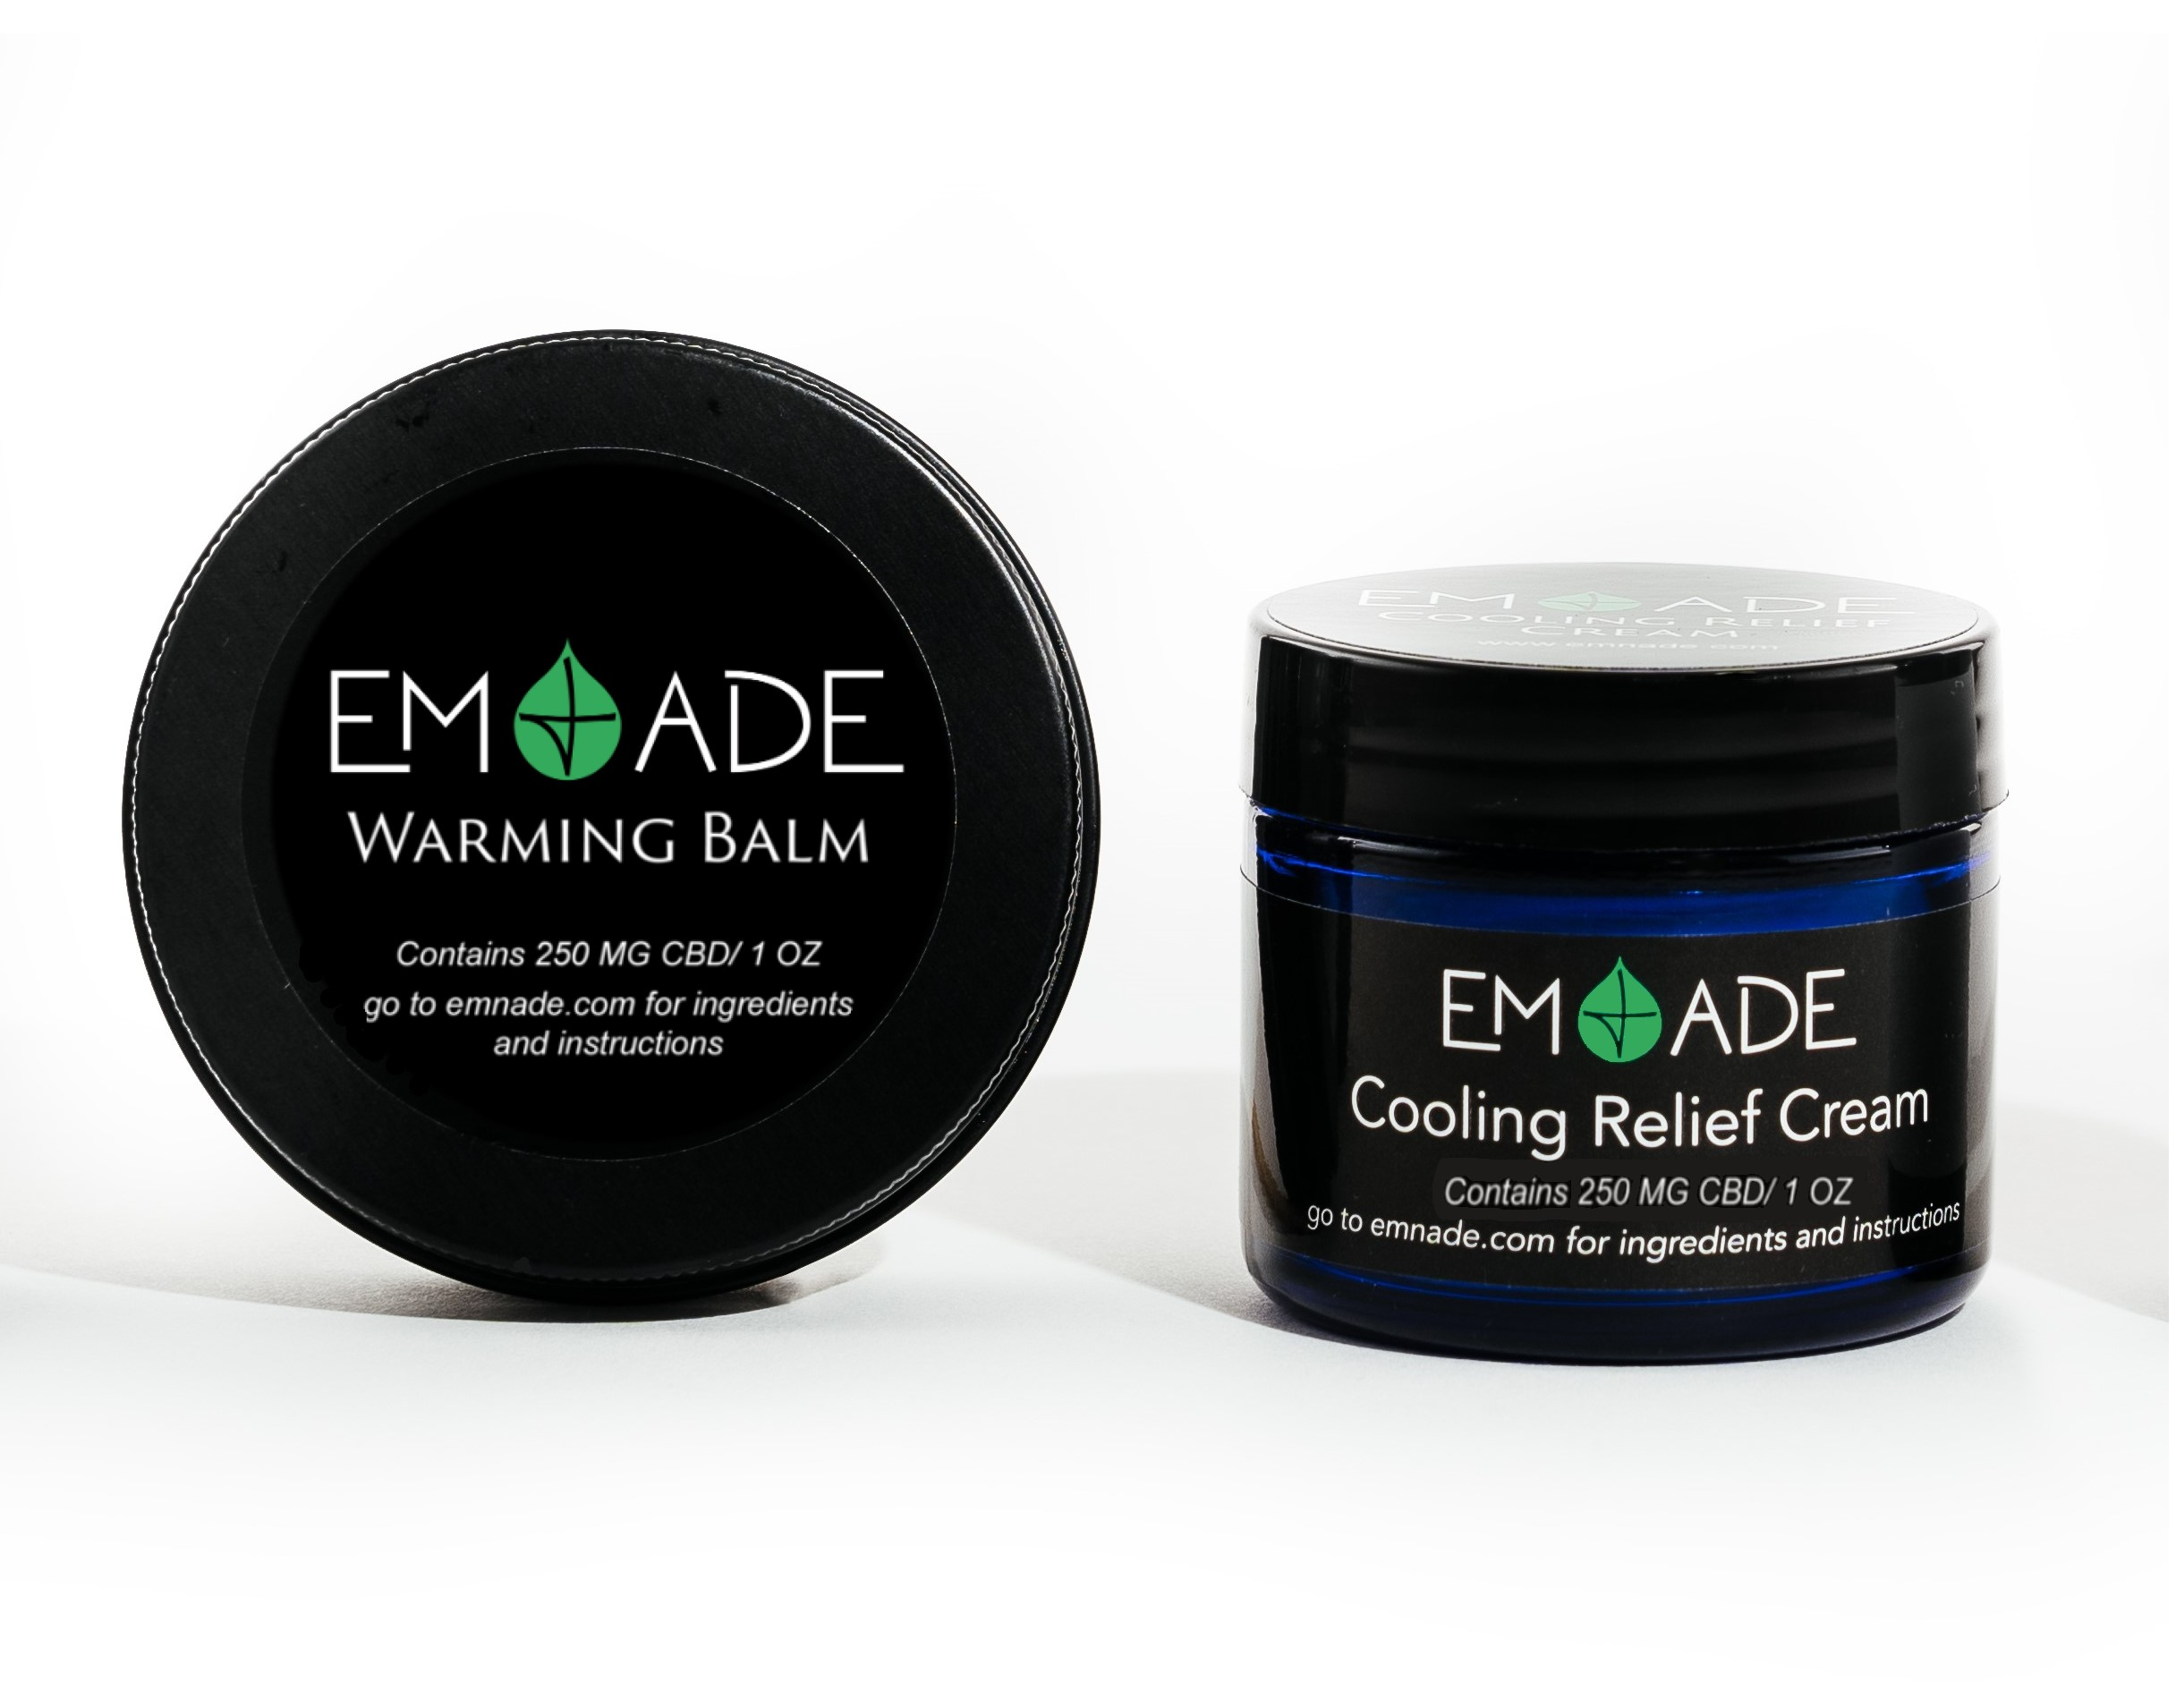 EM&ADE CBD TOPICALS FOR ATHLETES - EM & ADE products contain full-spectrum hemp-derived CBD, essential oils and other natural ingredients that reduce inflammation and injuries and relieve pain. We've got you covered before (Warming Balm) and after (Cooling Cream) your run!We've put these products to the test and have had relief from lower back, neck, joint, muscle and arthritis pain to name a few!